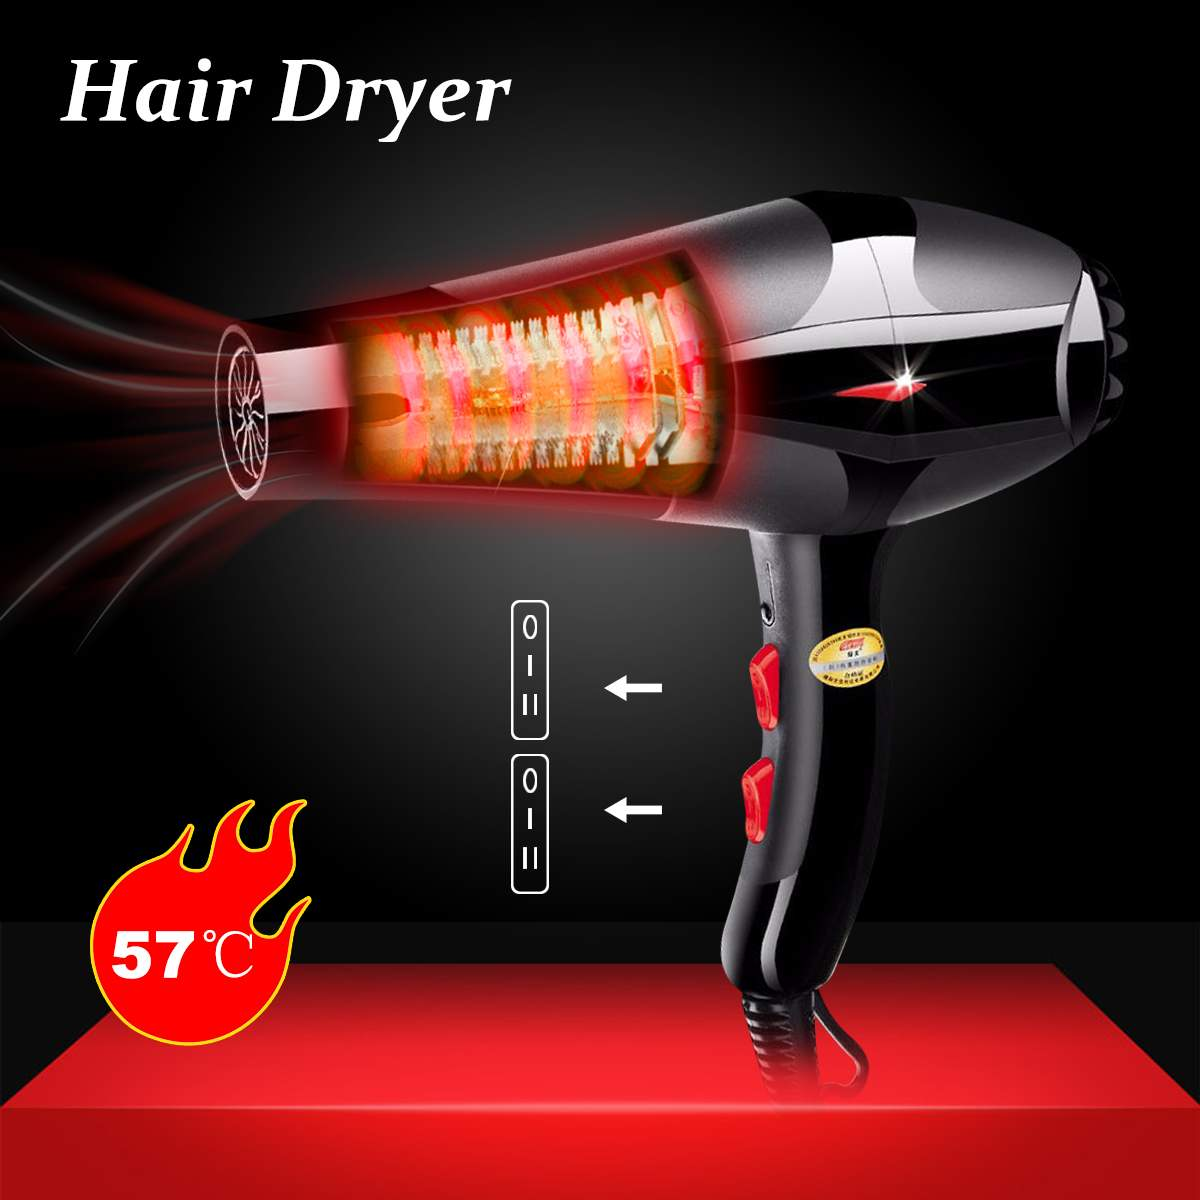 Professional Electric Blow Hair Dryer 2400W Fast Heating Energy saving 2 Speed Efficient EU Plug Constant Tempreture Strong Wind|Hair Dryers| |  - title=